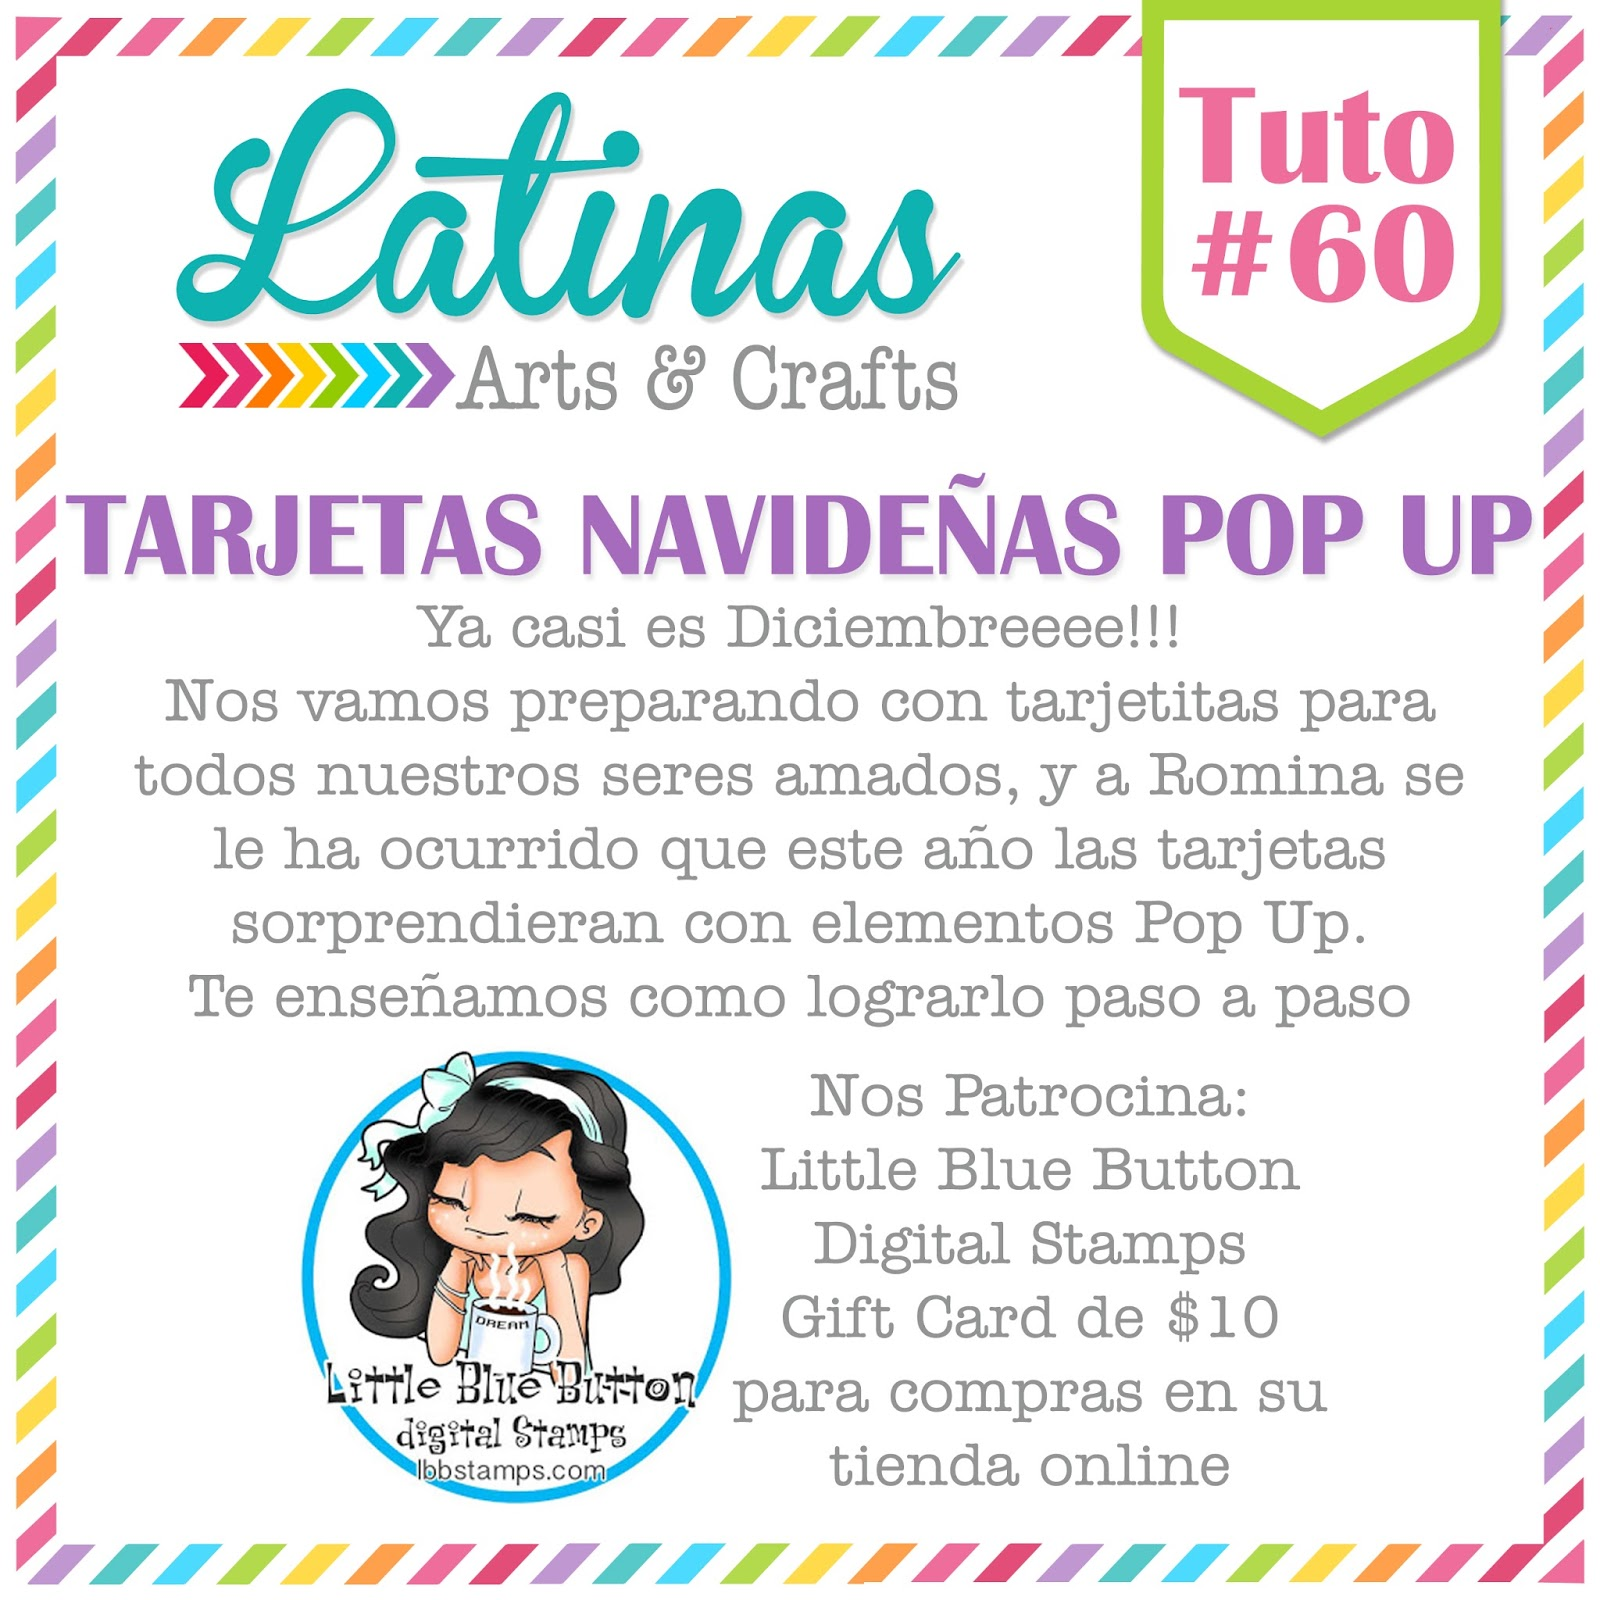 quien nos invita a realizar una tarjeta navidea pop up nos acompaa como patrocinado little blue button stamps con sus hermosos sellos digitales